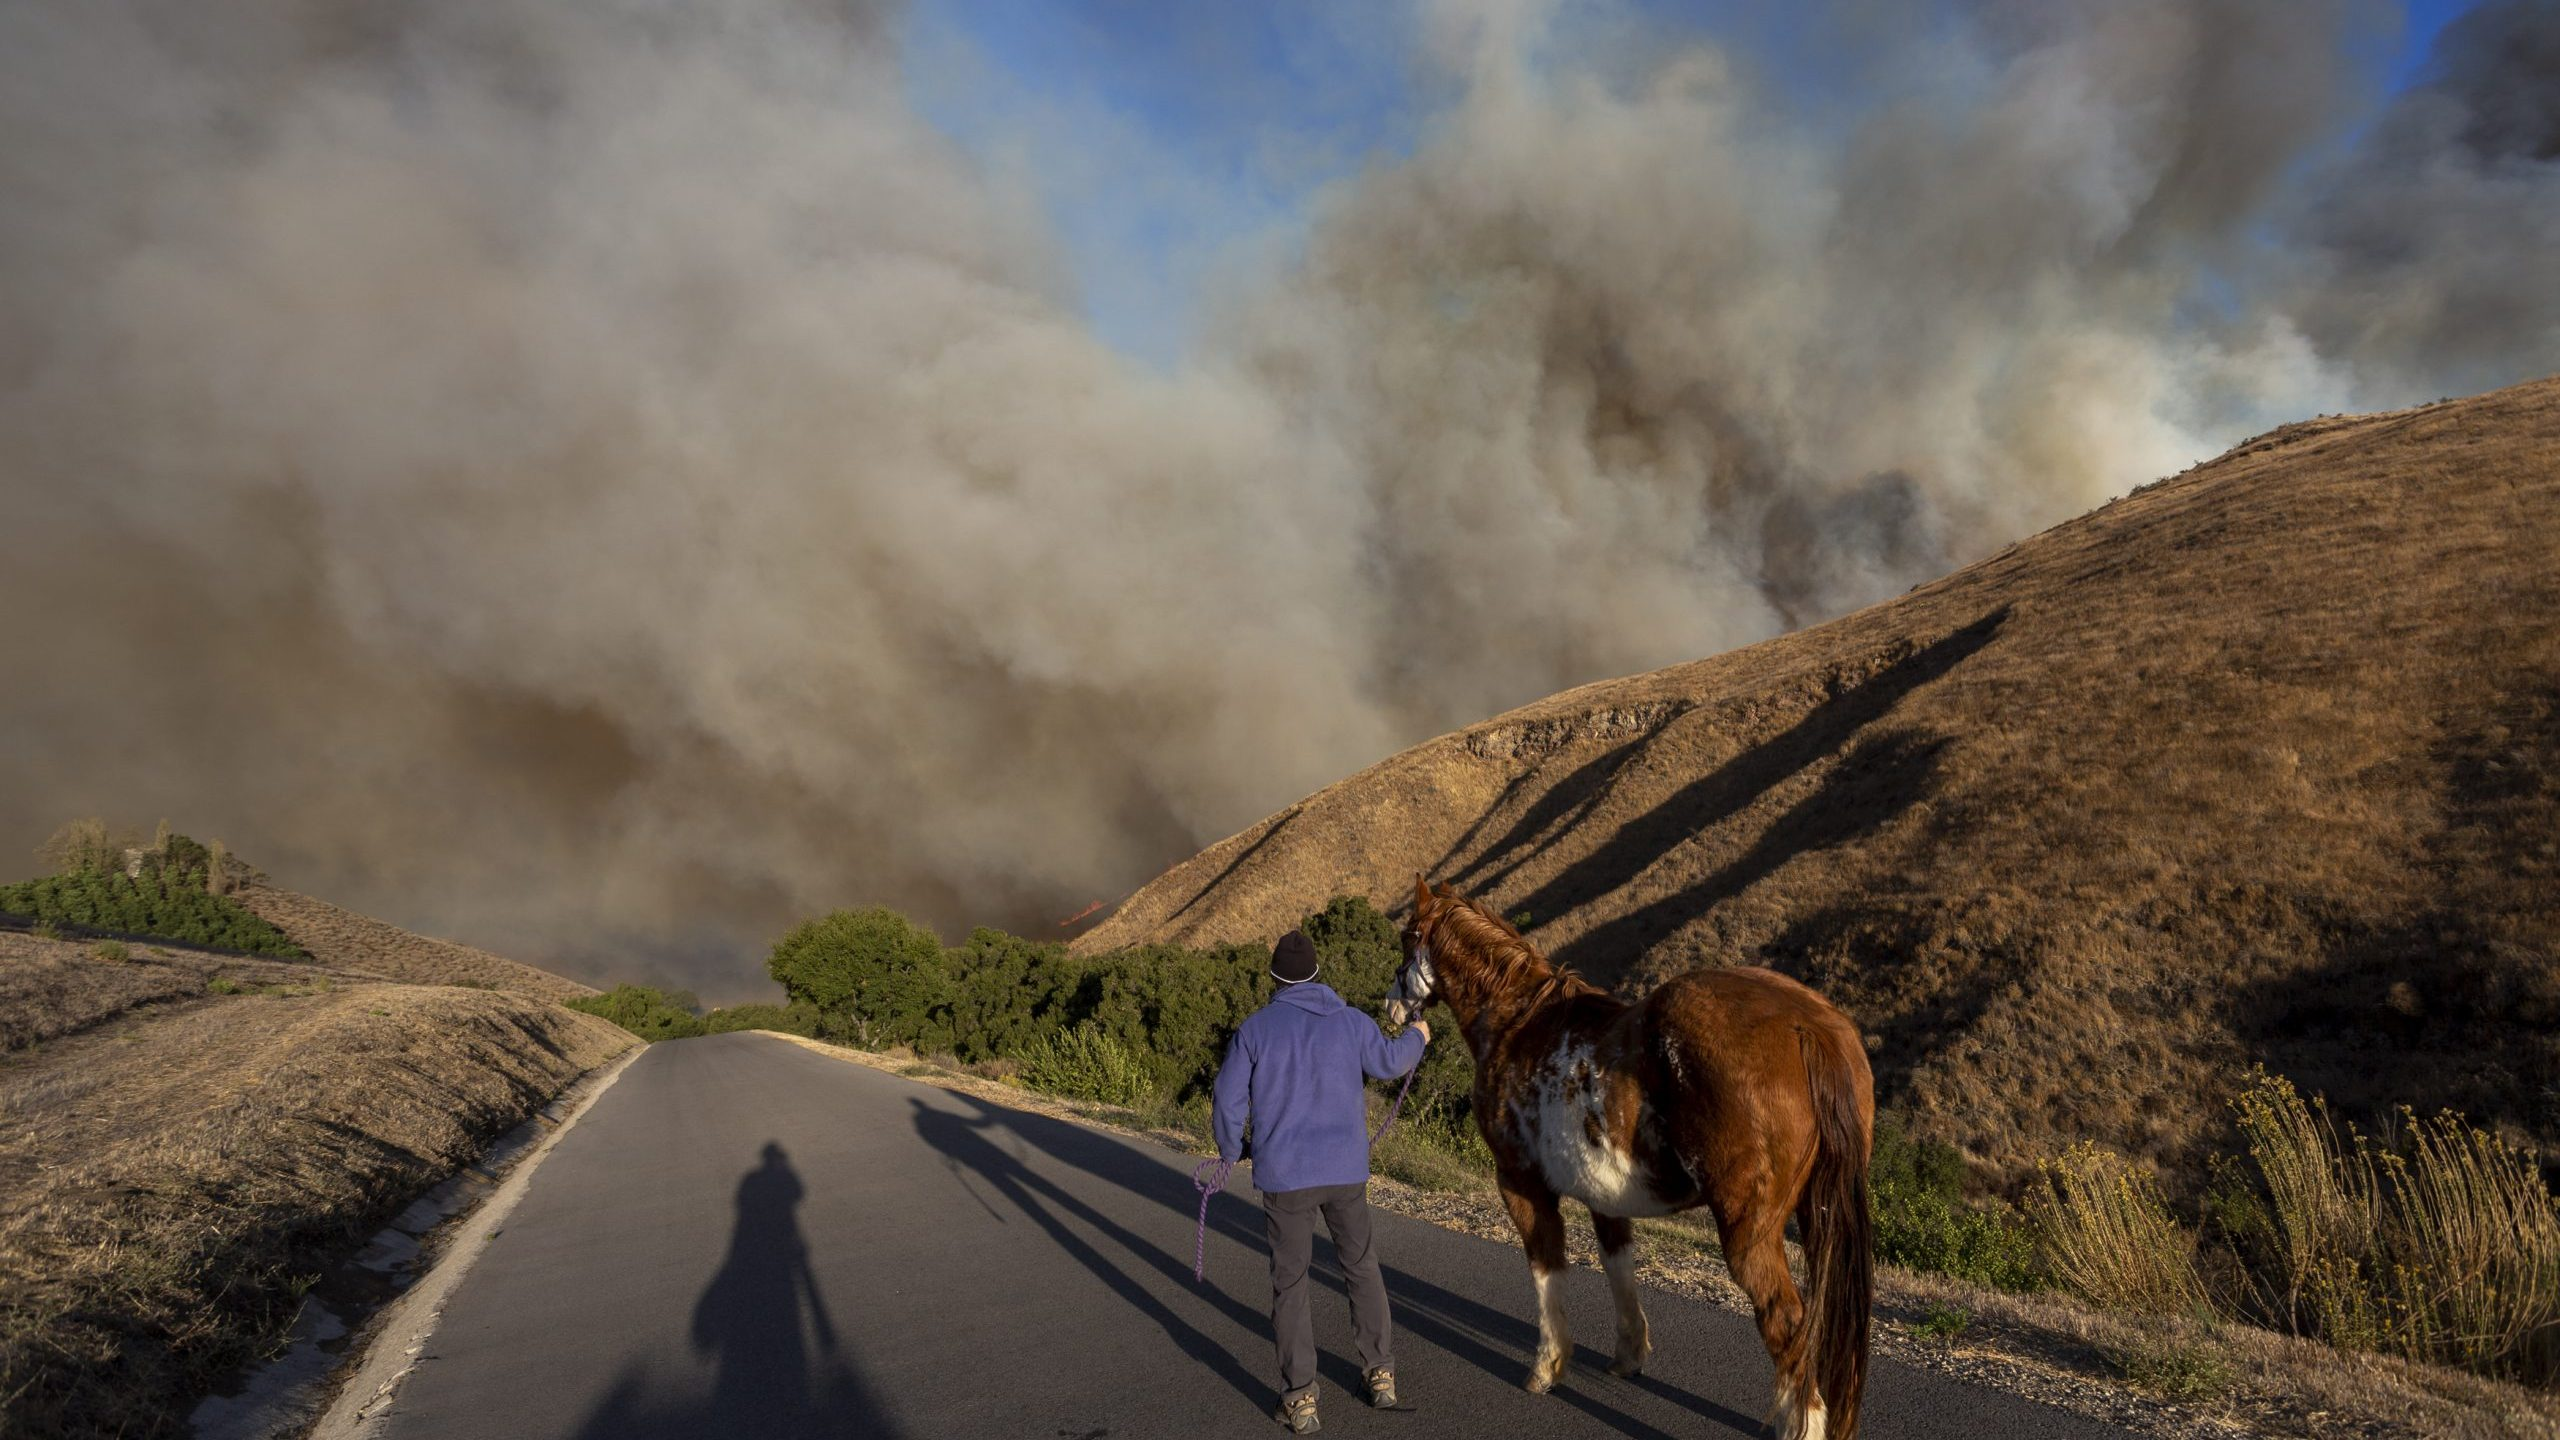 A man evacuates horses as the Easy Fire approaches on Oct. 30, 2019, near Simi Valley. (Credit: David McNew/Getty Images)